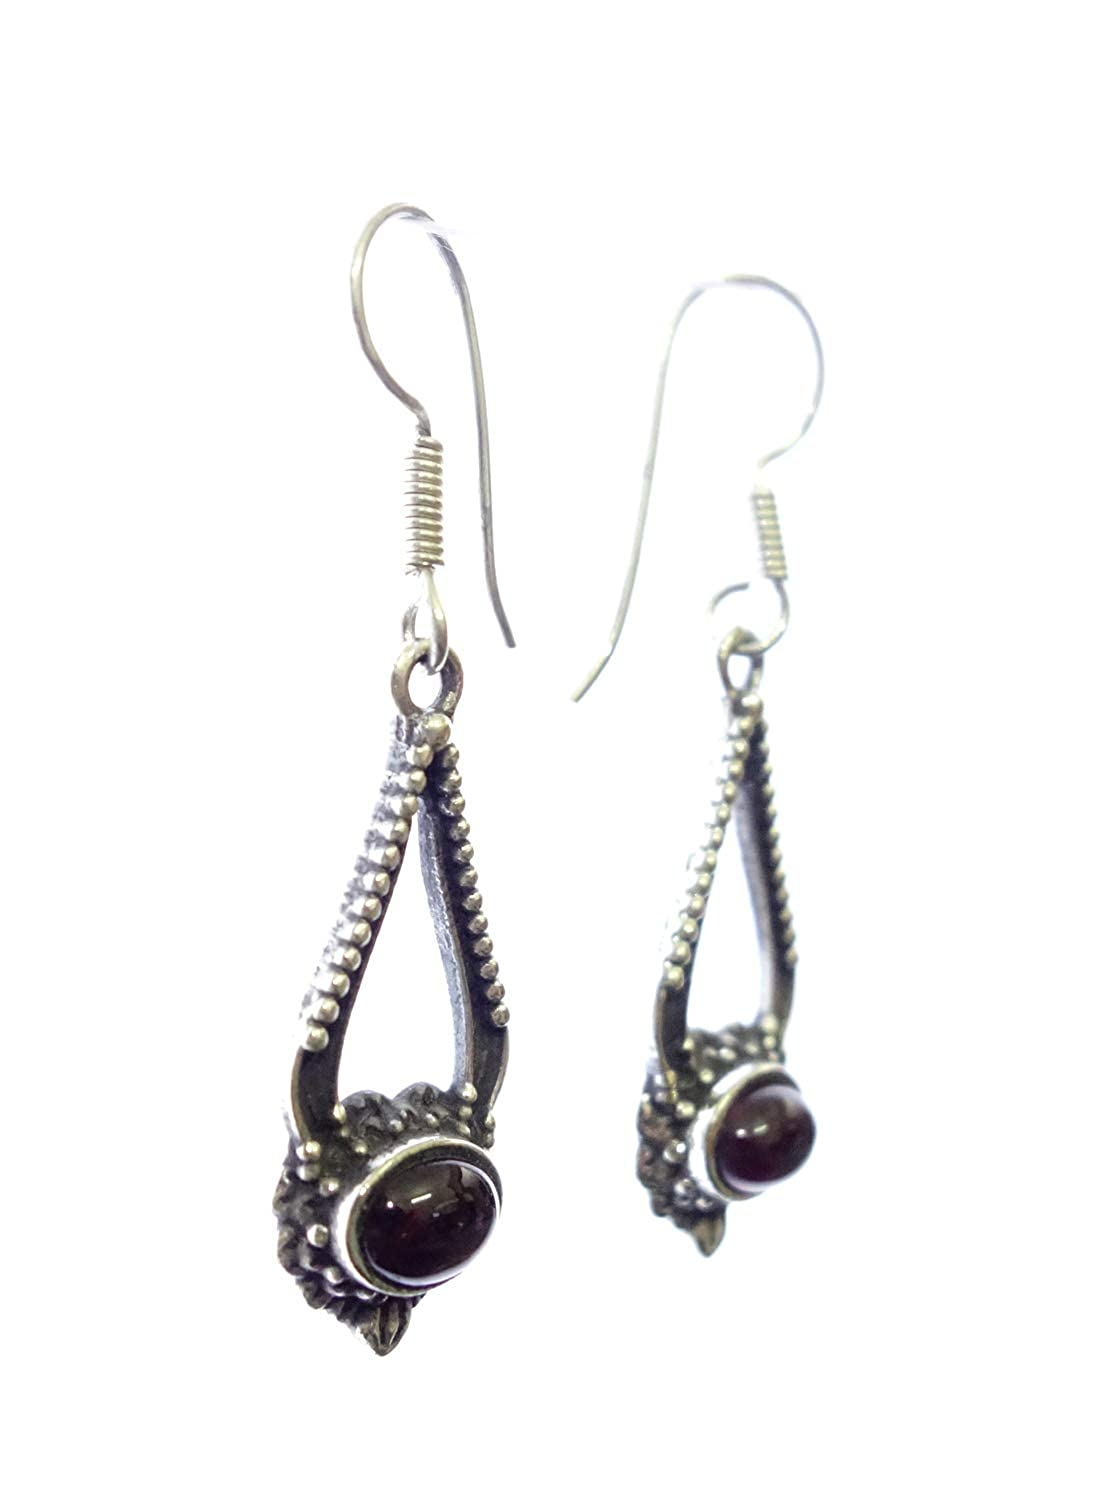 TIBETAN SILVER GARNET GEMSTONE TINY SMALL BABY DANGLE EARRINGS FOR WOMEN AND YOUNG GIRLS FINE ENGRAVED SILVER PLATED EARRINGS UNIQUE DESIGNER FASHION EARRINGS BY ARTISAN